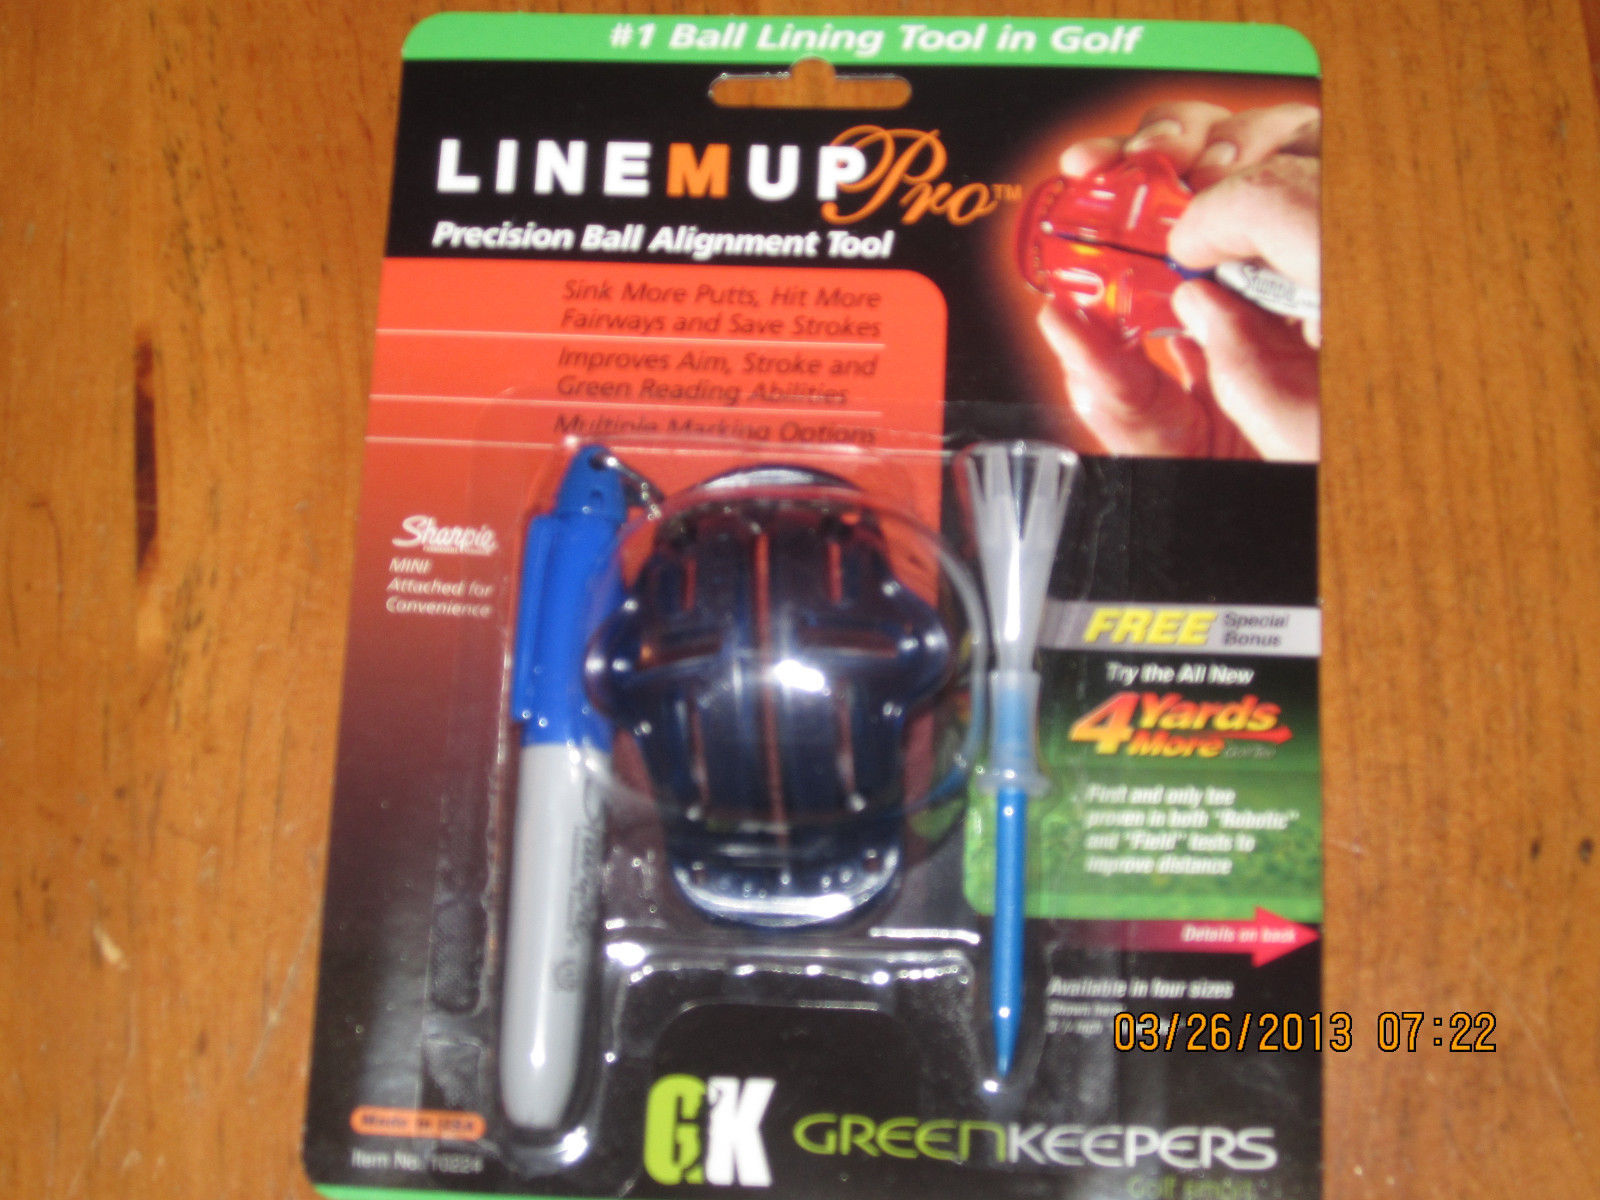 Izzo Line Up Pro Ball Lining Tool with Sharpie and Free 4 Yards for Golf Tee - $9.46